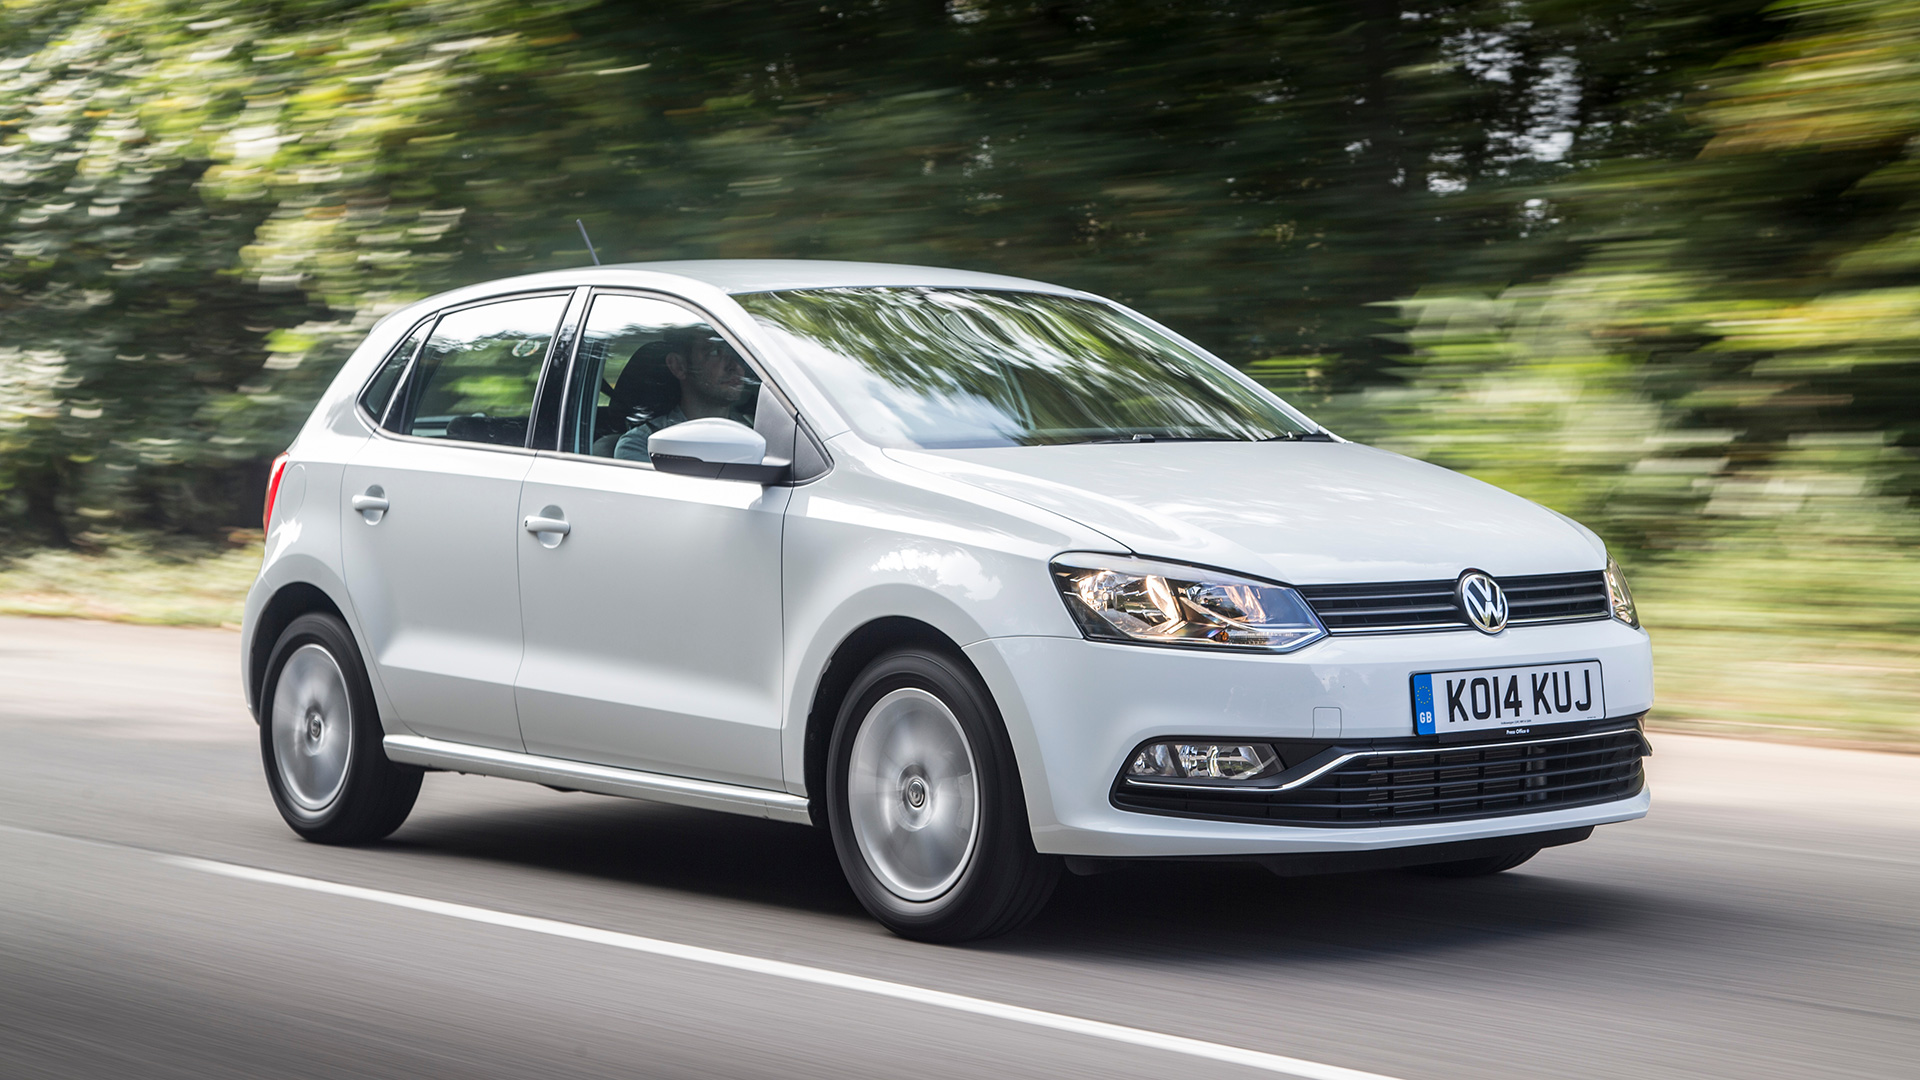 Volkswagen Polo Wallpapers Vehicles Hq Volkswagen Polo Pictures 4k Wallpapers 2019